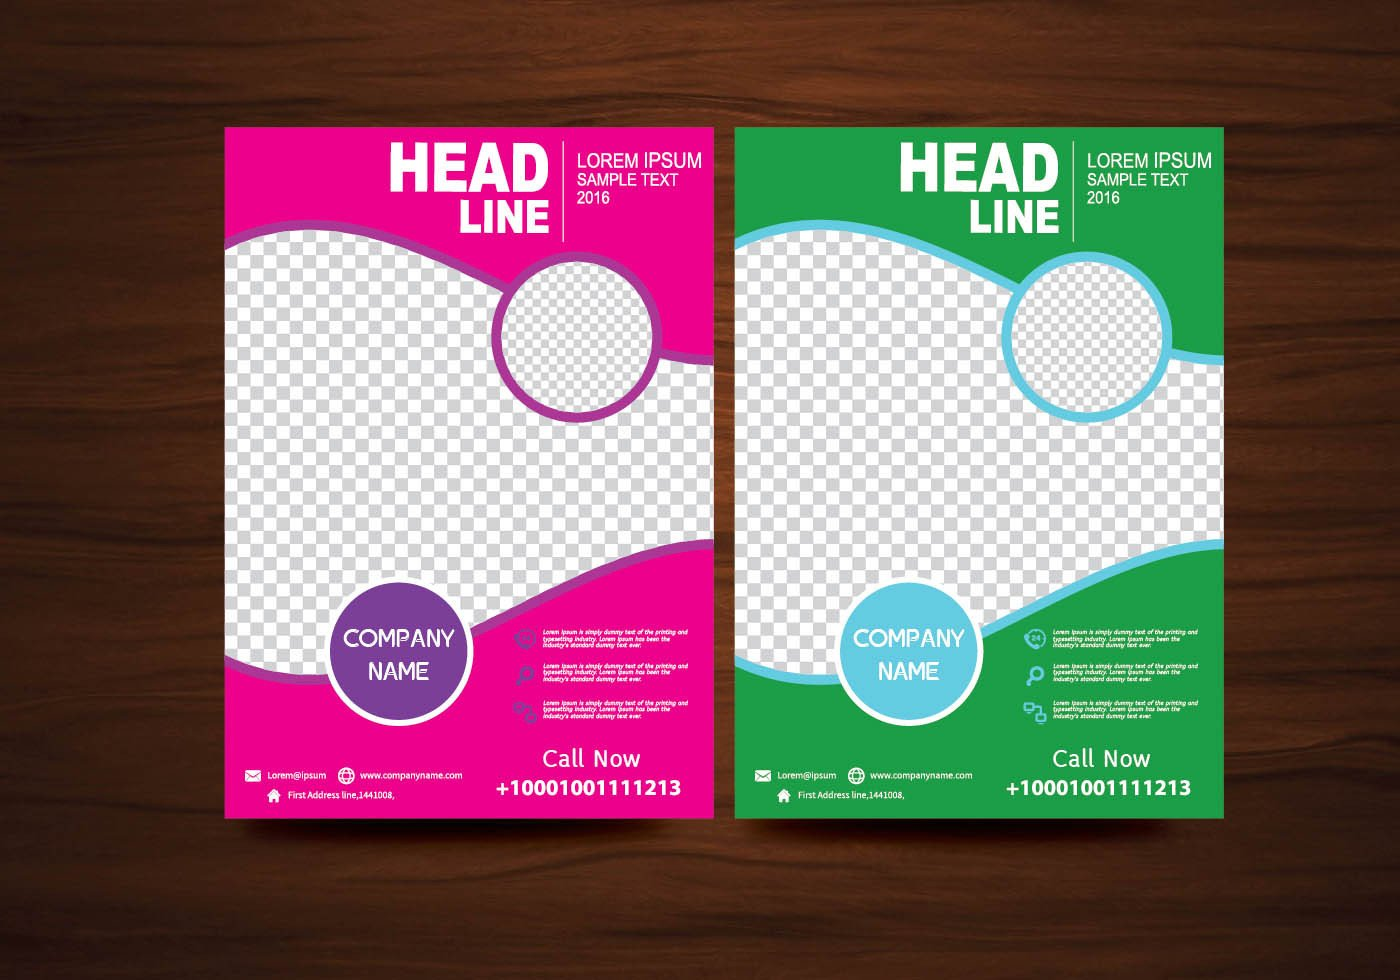 Free Flyers Designs Templates Vector Brochure Flyer Design Layout Template In A4 Size